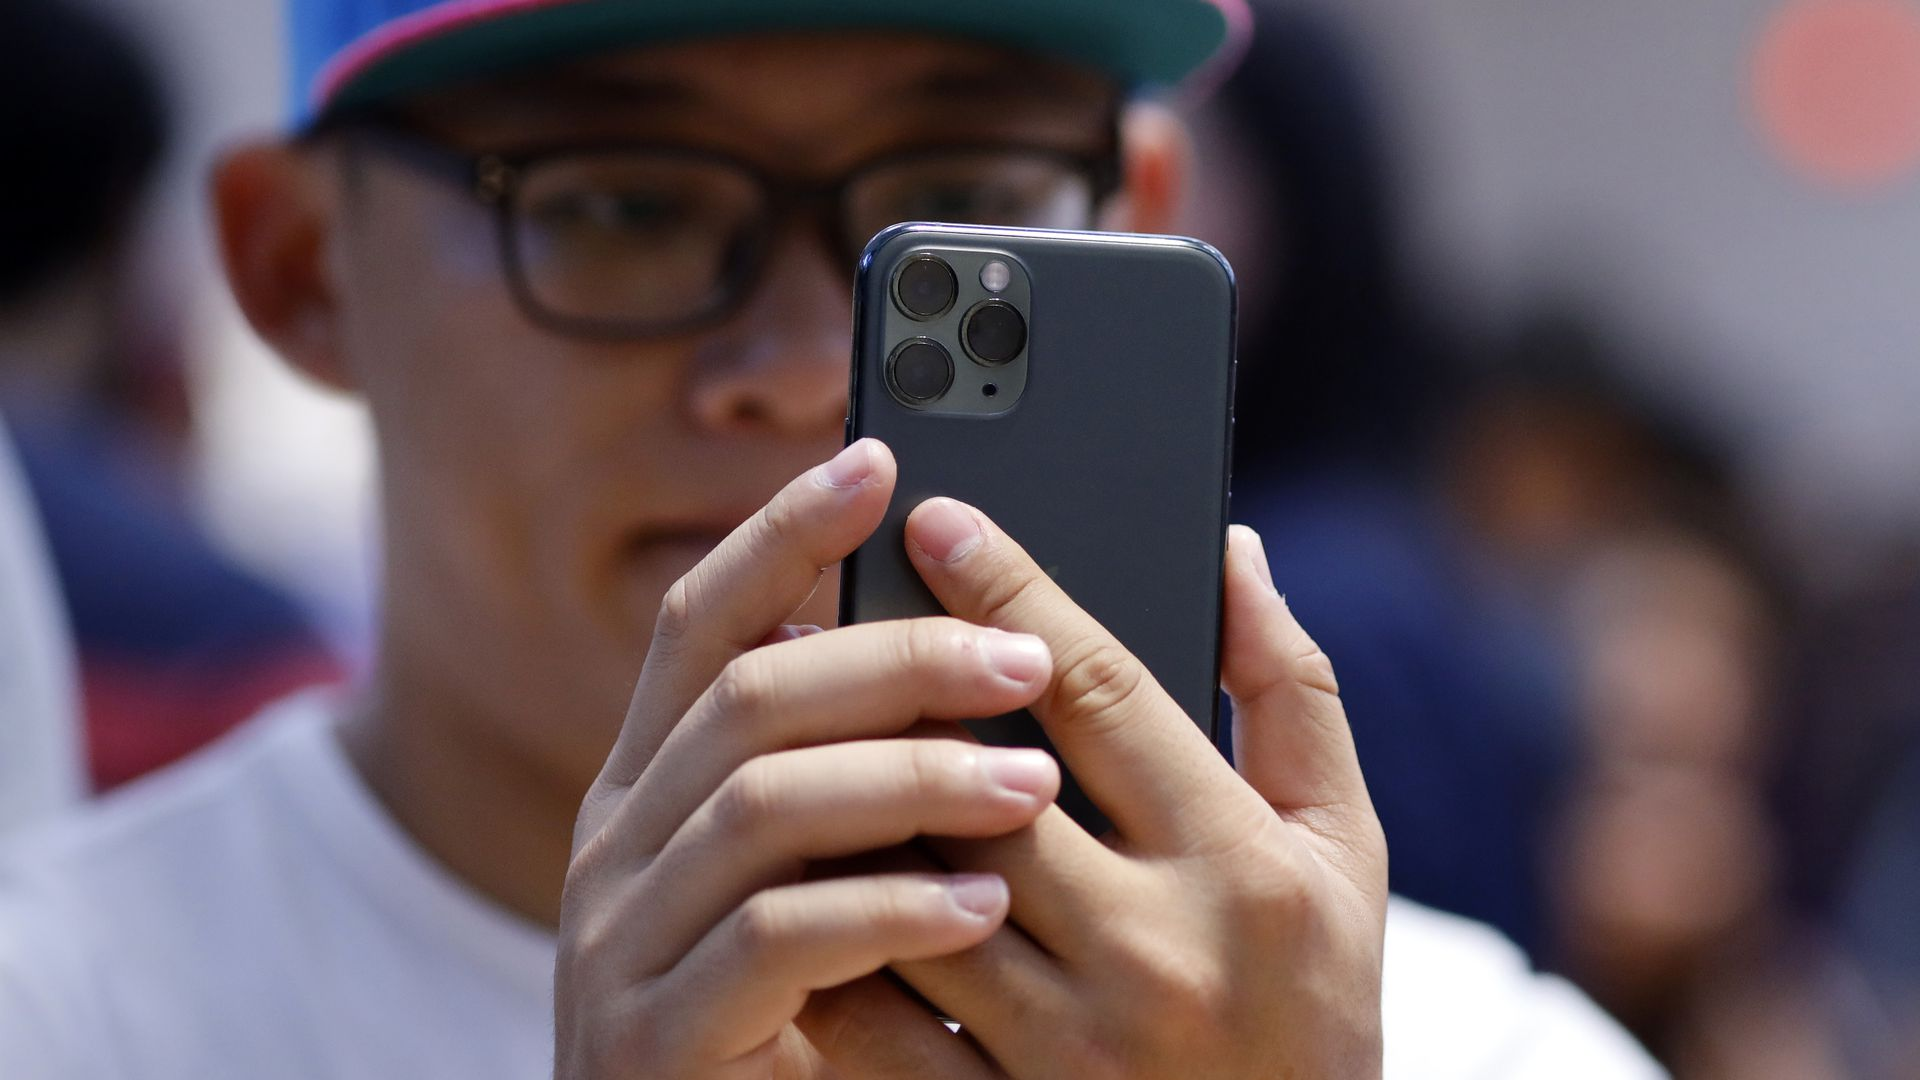 A customer tries an iPhone 11 Pro Max.